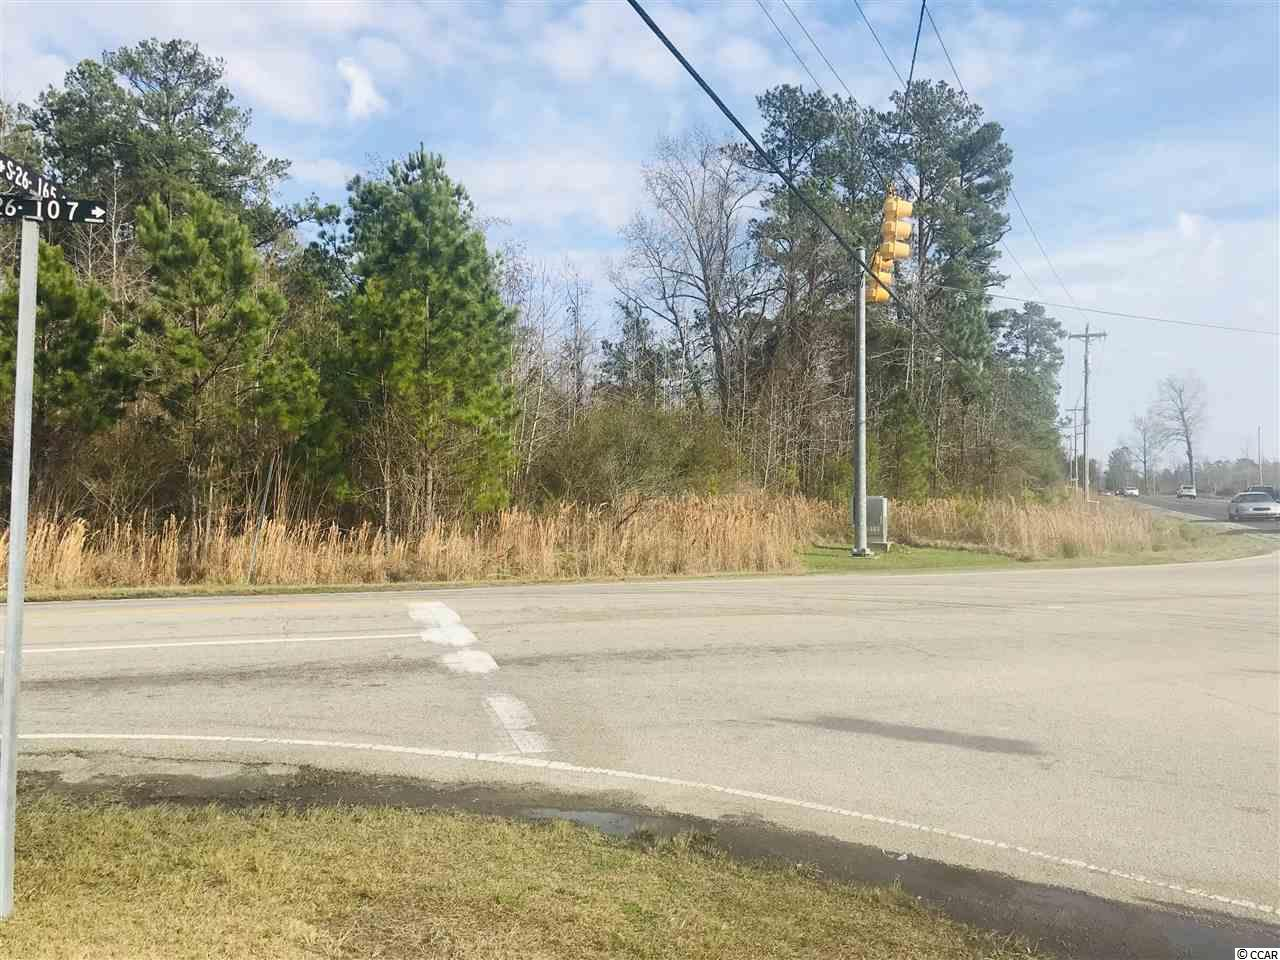 High traffic count corner with many opportunities for growth. This corner lot is zoned as Neighborhood Commercial which allows for many uses. Frontage on Cultra Road and Oak Street. At this time this property is just outside the City Limits of Conway, SC. Call the office for more information today. Conway, SC is located in Horry County SC. This lot is located just minutes from several large housing developments as well as new housing developments in progress now.